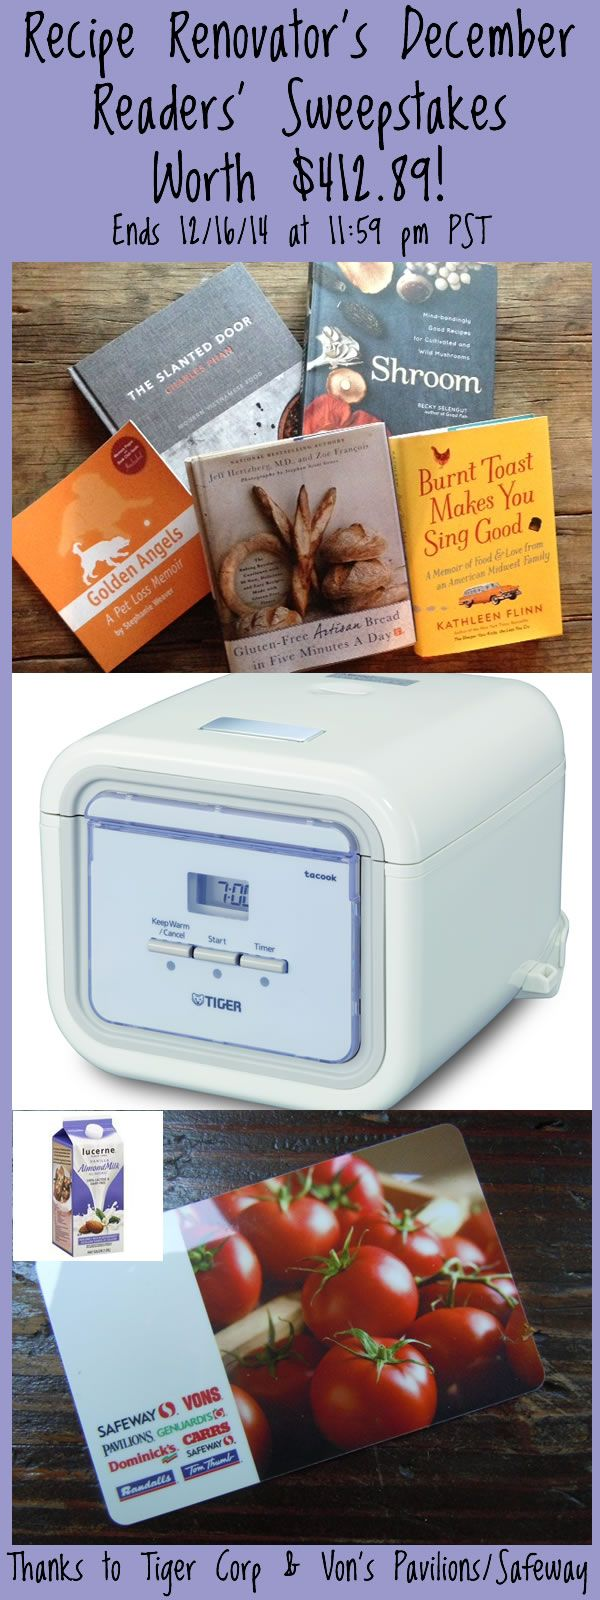 December 2014 Readers Sweepstakes: 5 books plus rice cooker plus Safeway gift card = $450 value! | Recipe Renovator | Ends 12/16/14 at 11:59 PM PST